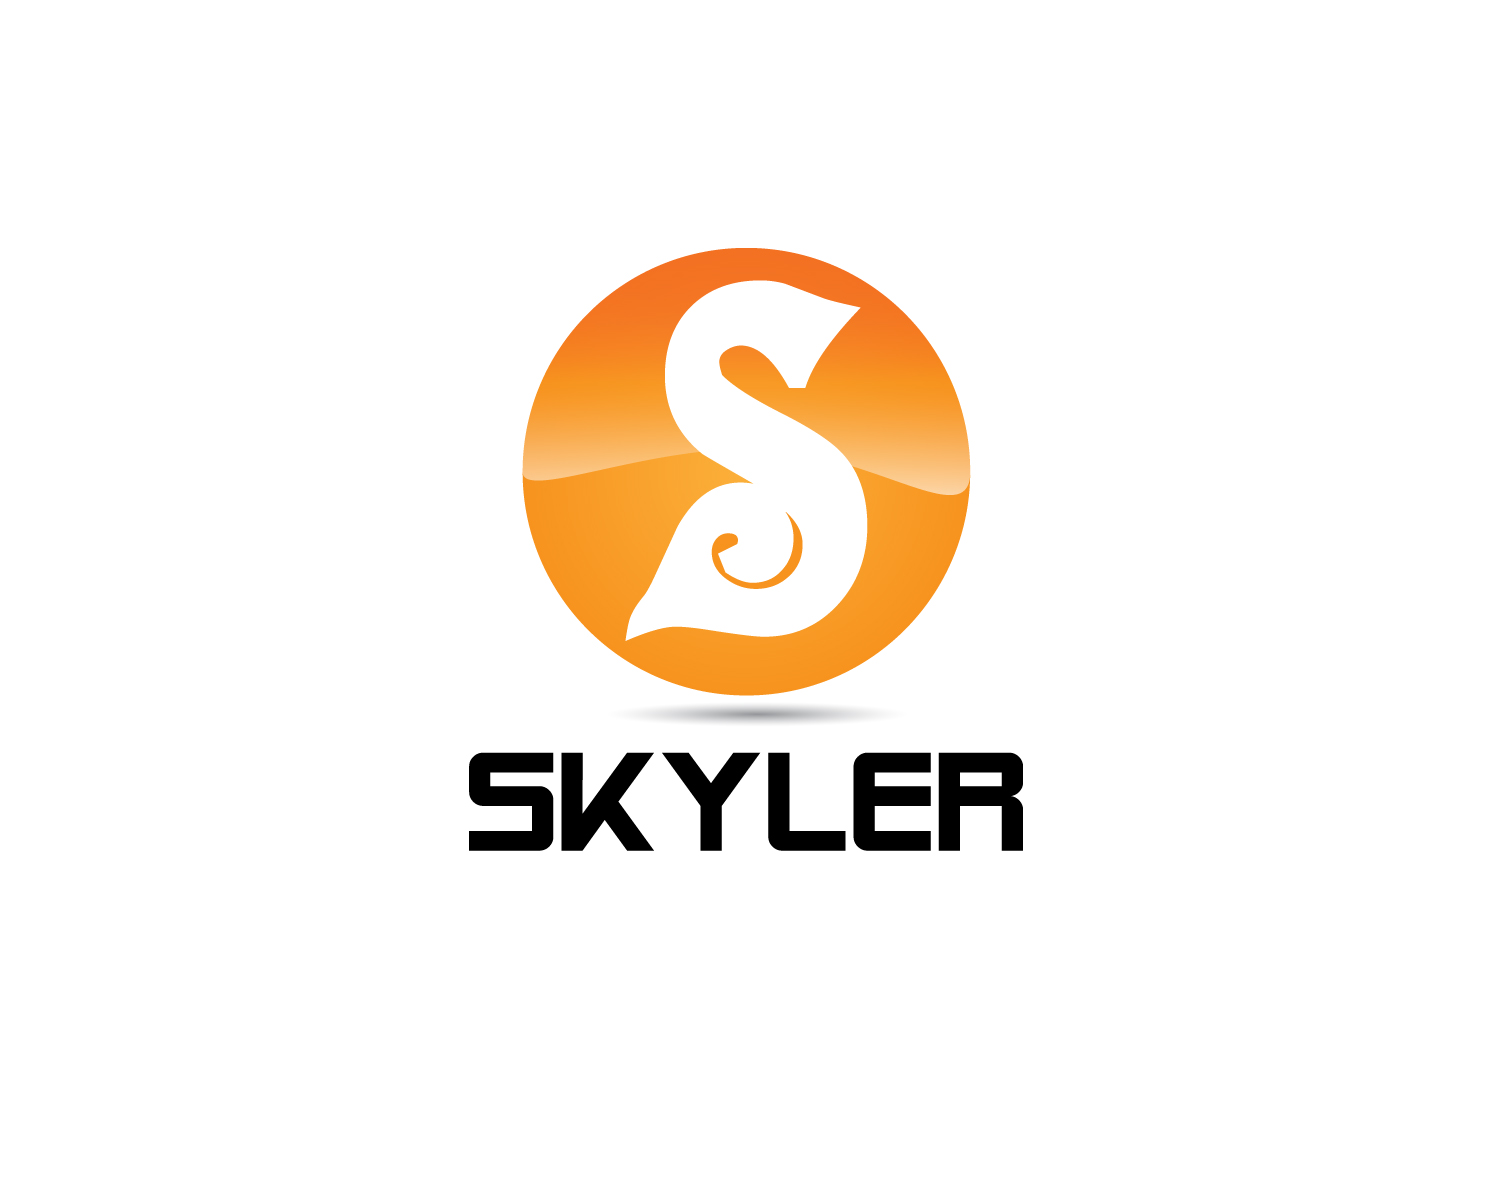 Logo Design by Jagdeep Singh - Entry No. 26 in the Logo Design Contest Artistic Logo Design for Skyler.Asia.